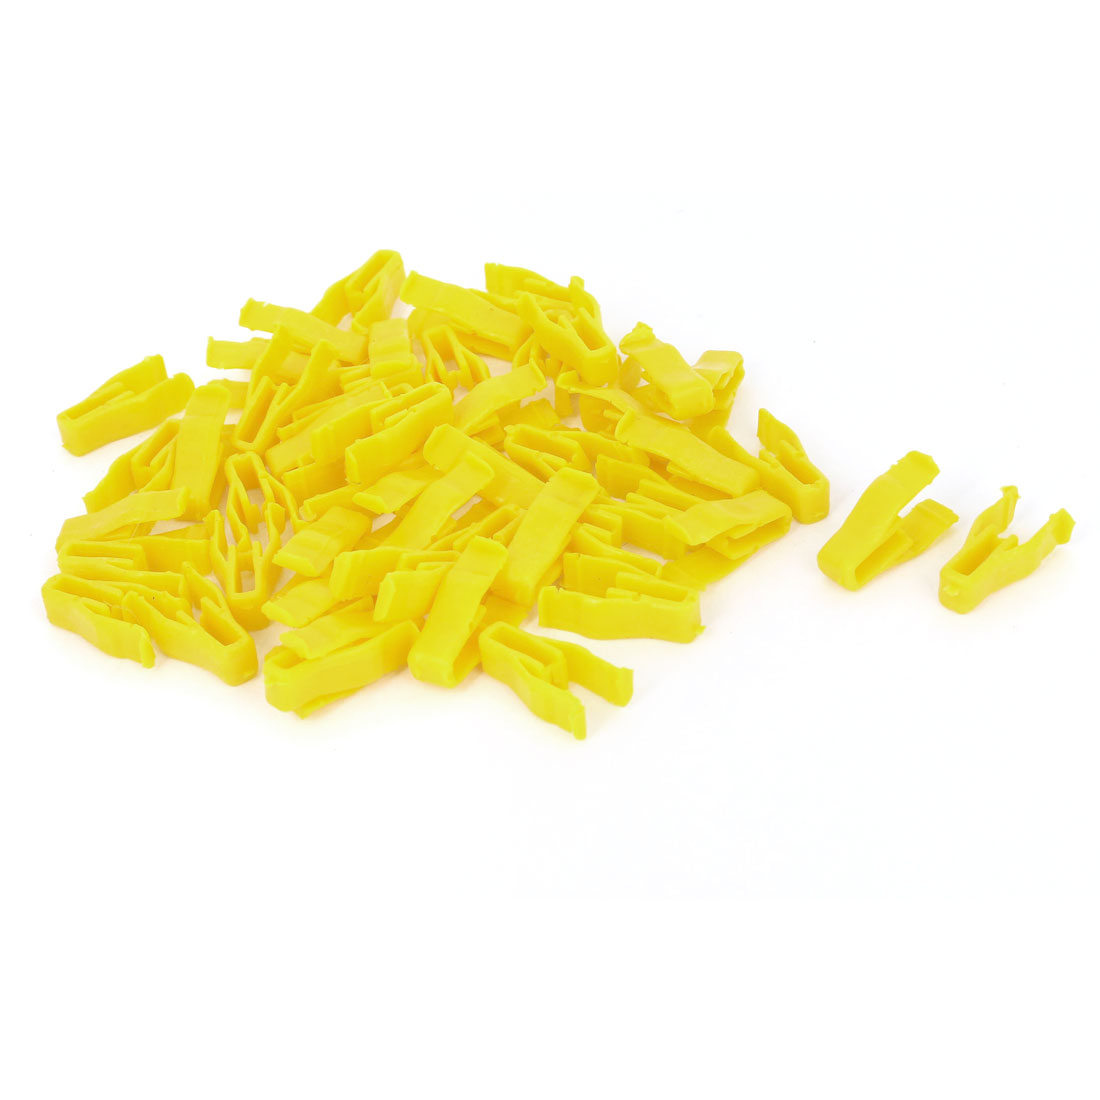 50 Pcs Yellow Plastic Rivet Trim Fastener Moulding Clips for 6mm Hole